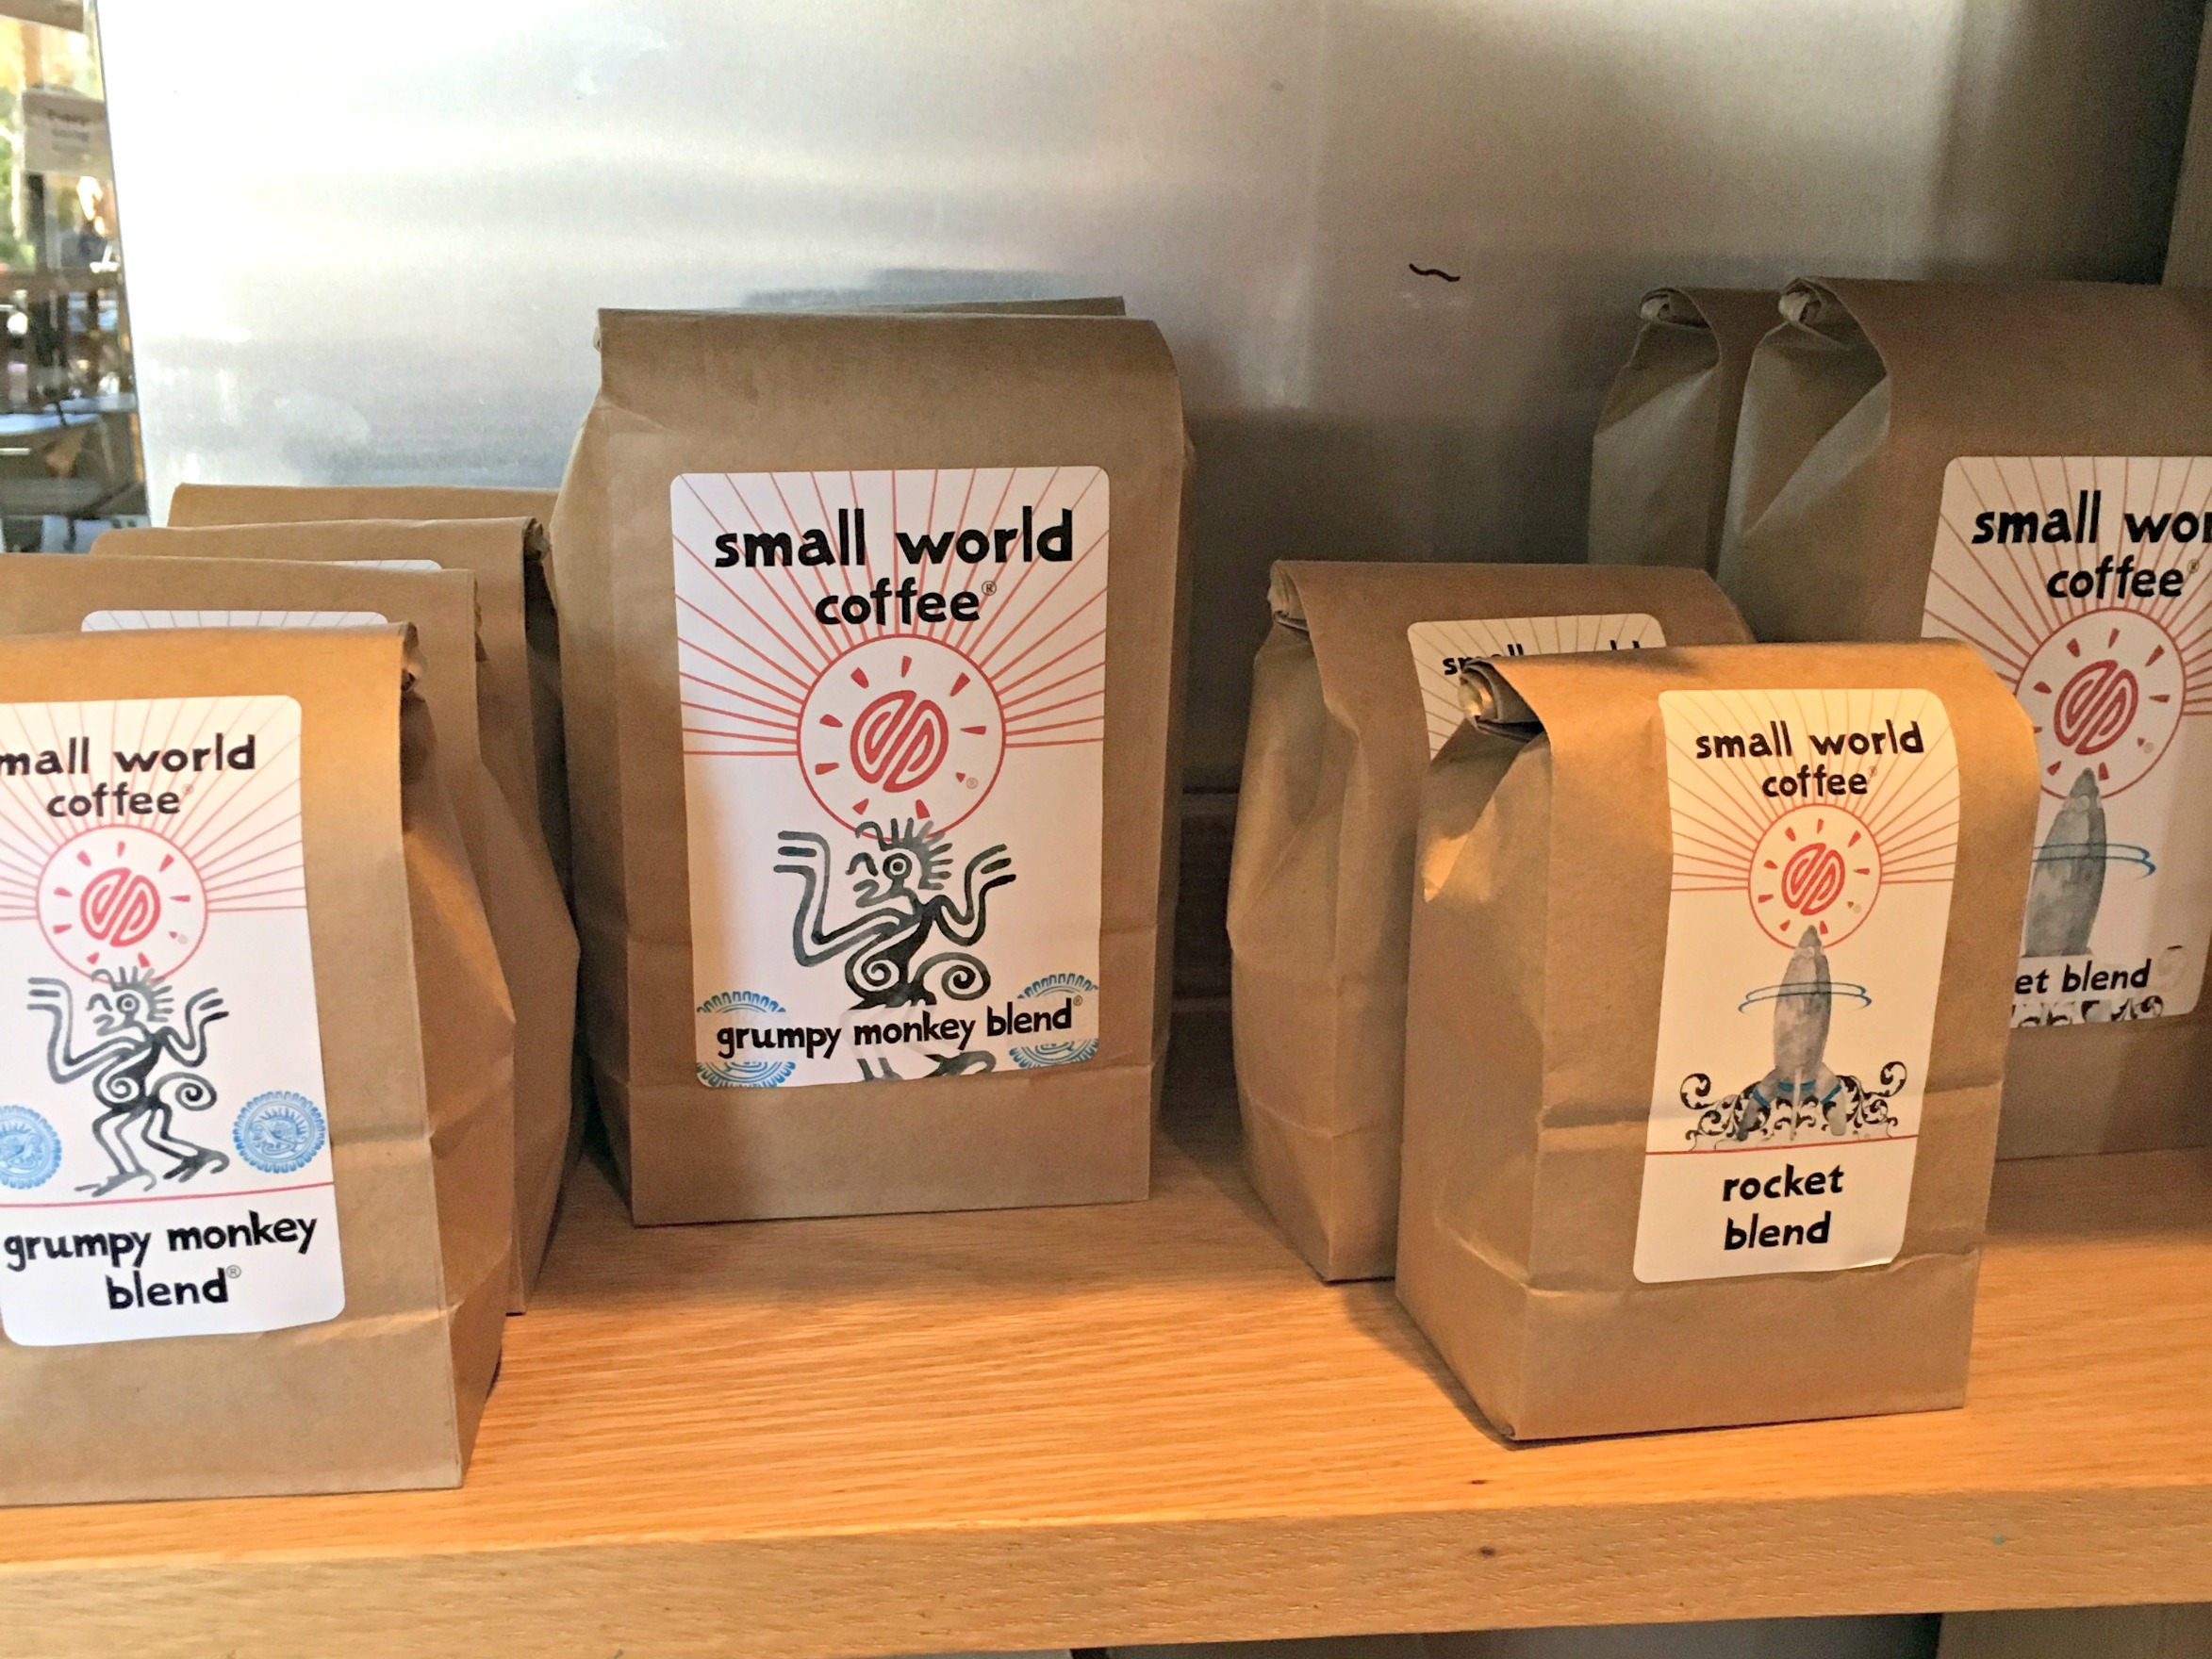 But First: Small World Coffee